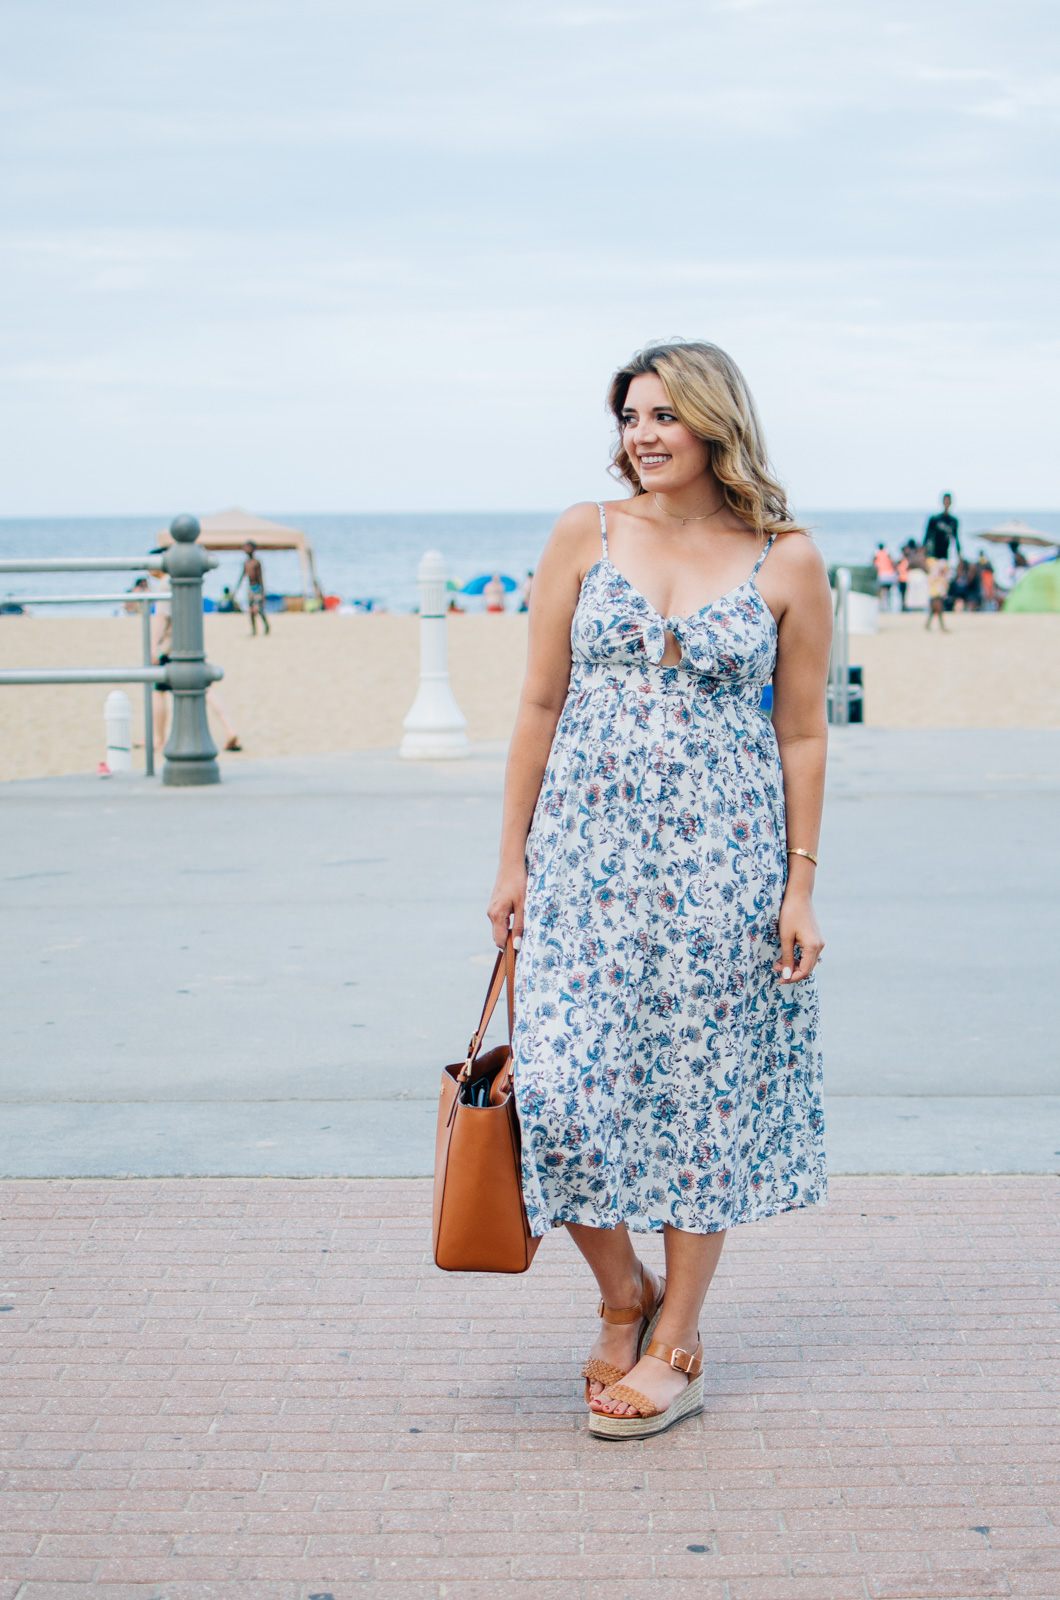 cute sundress summer - tie-front dress | For more cute vacation outfit ideas, head to bylaurenm.com!